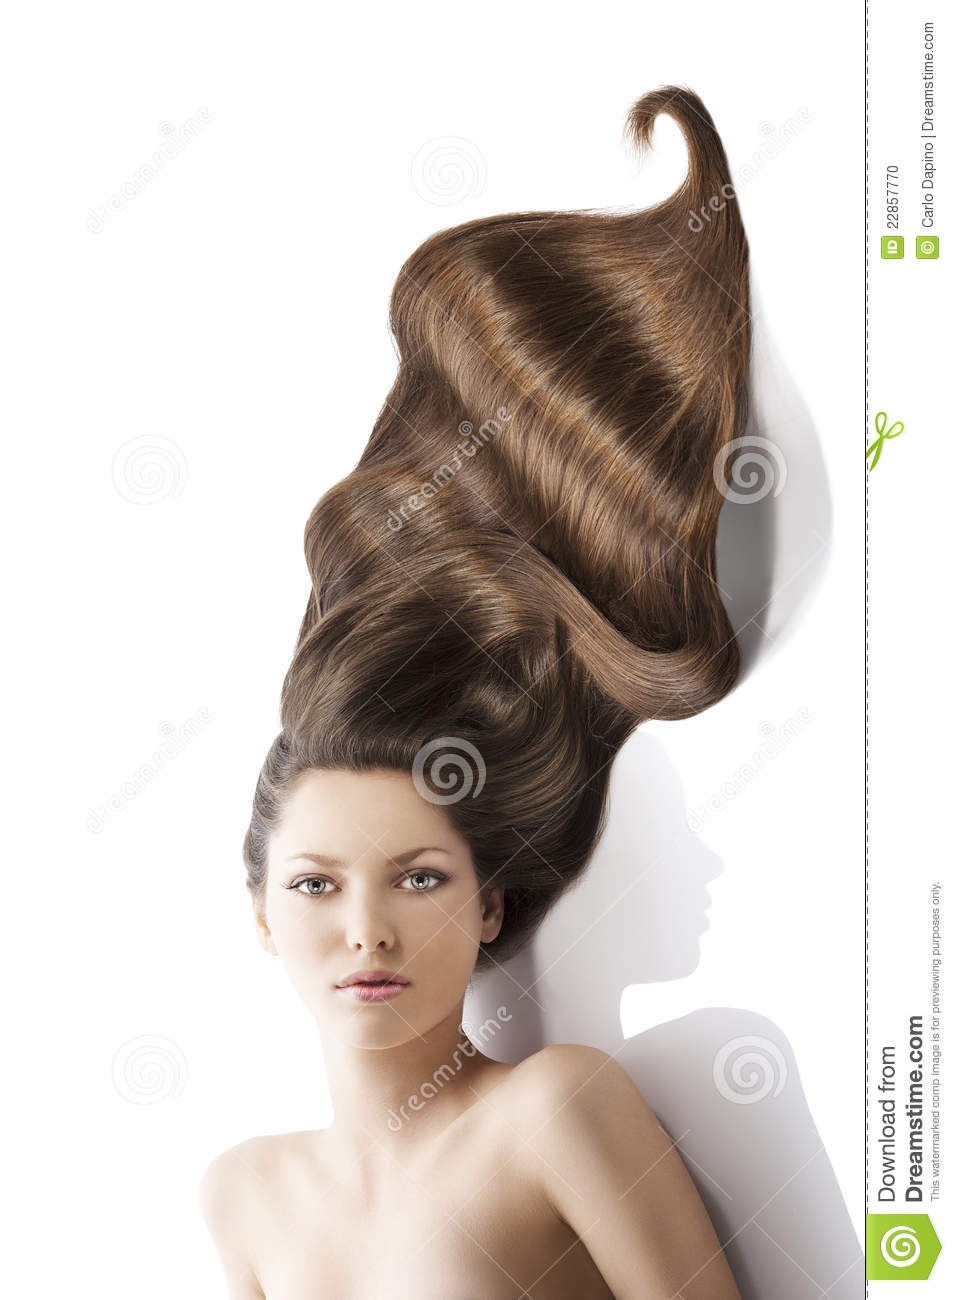 Wondrous Beauty Young Girl Hairstyle And A Lot Of Hair Stock Photo Image Short Hairstyles For Black Women Fulllsitofus